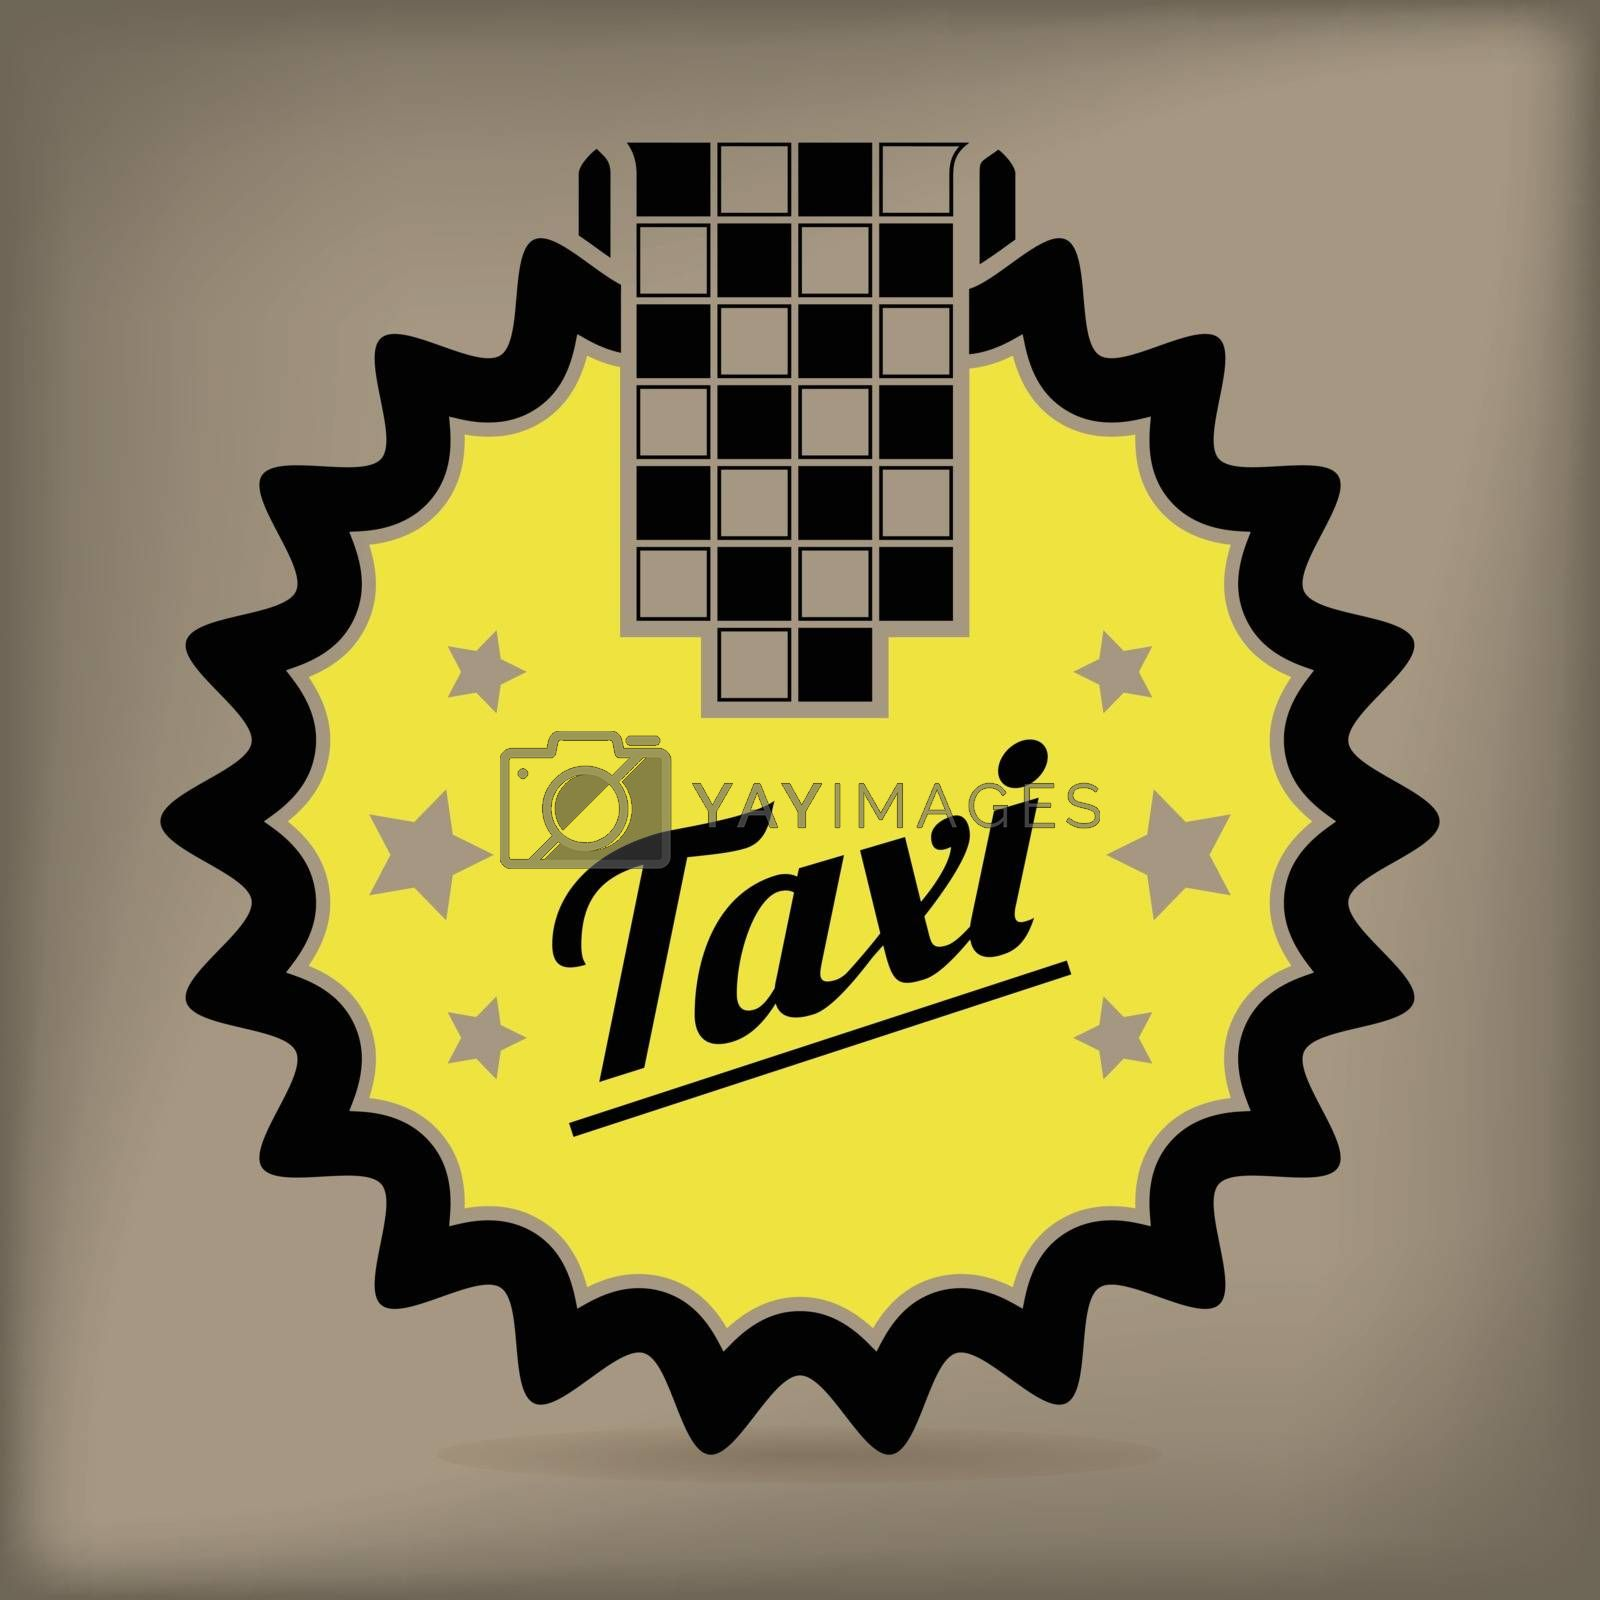 Royalty free image of Taxi badge design by vipervxw